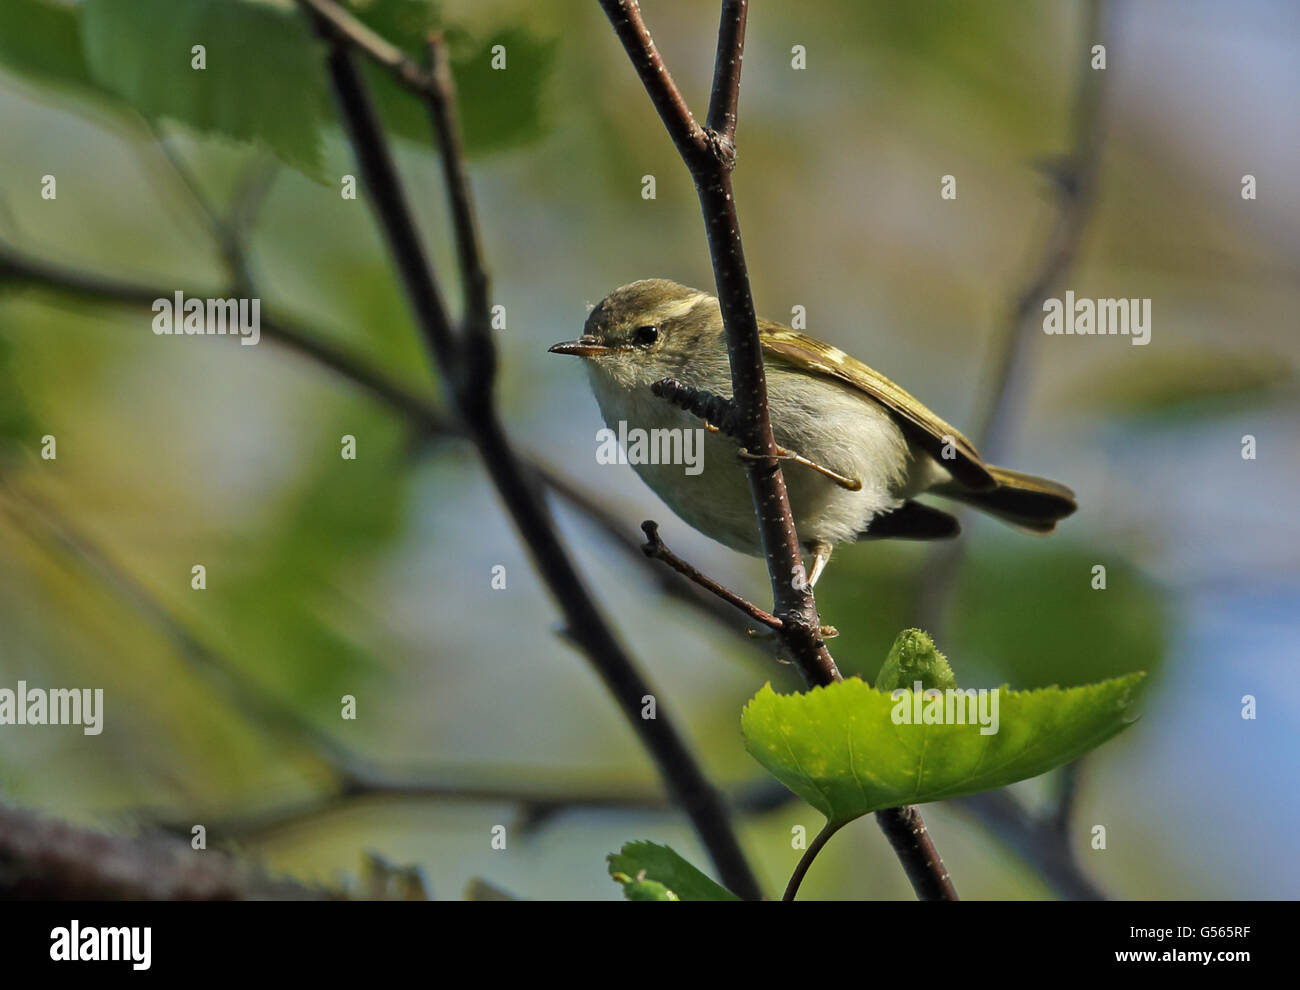 Hume's Leaf-warbler (Phylloscopus humei mandellii) adult, perched on twig, Old Peak, Hebei, China, May Stock Photo